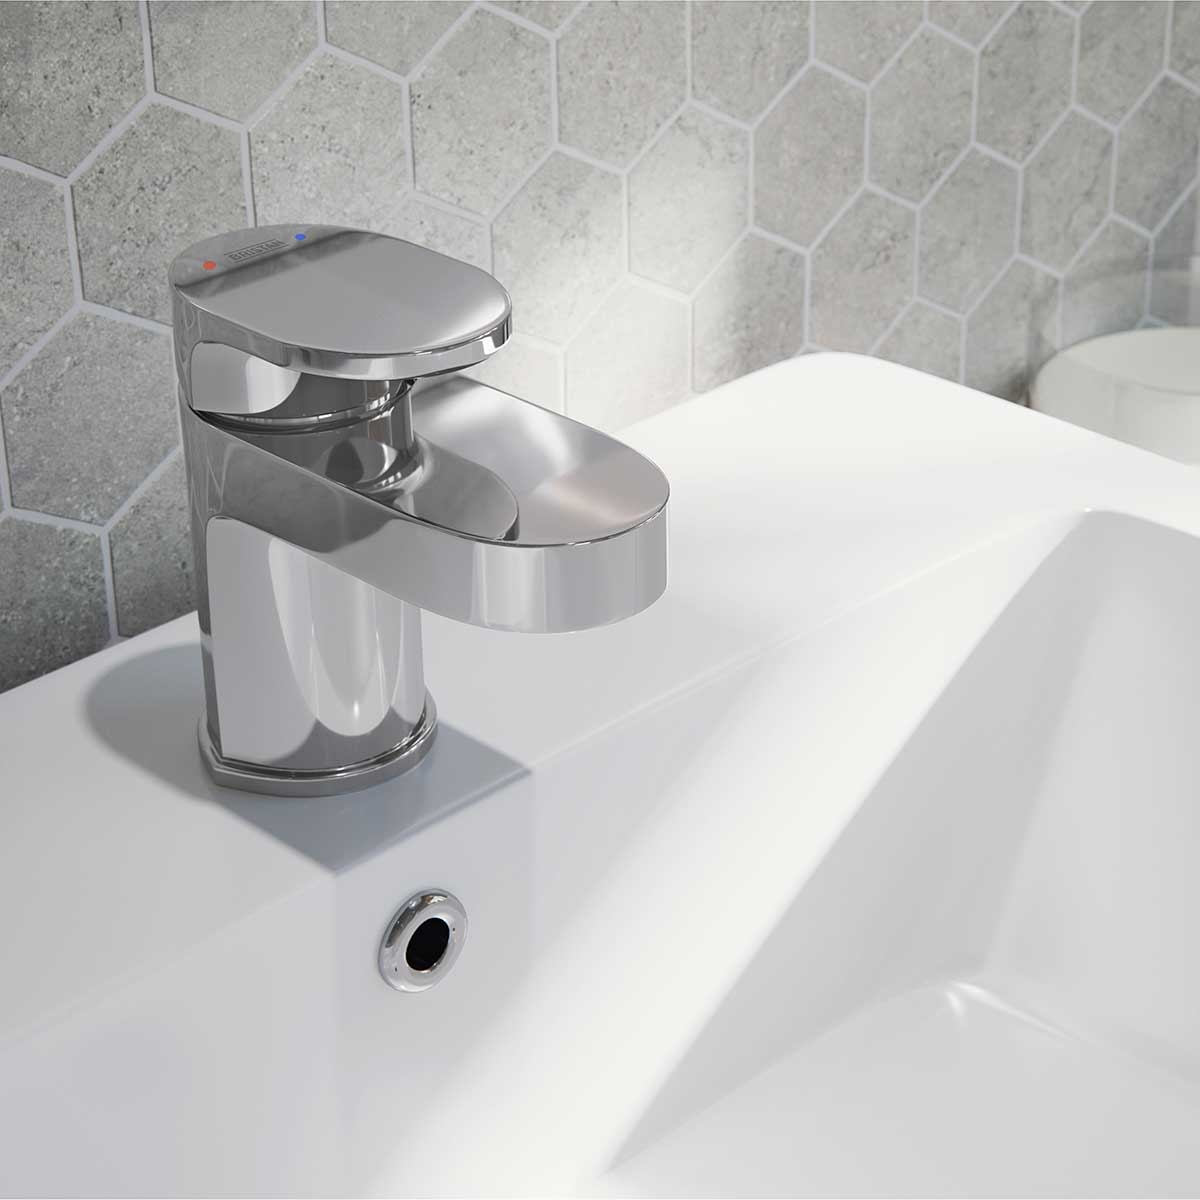 Bristan Frenzy Basin Mixer Tap with Waste - Chrome